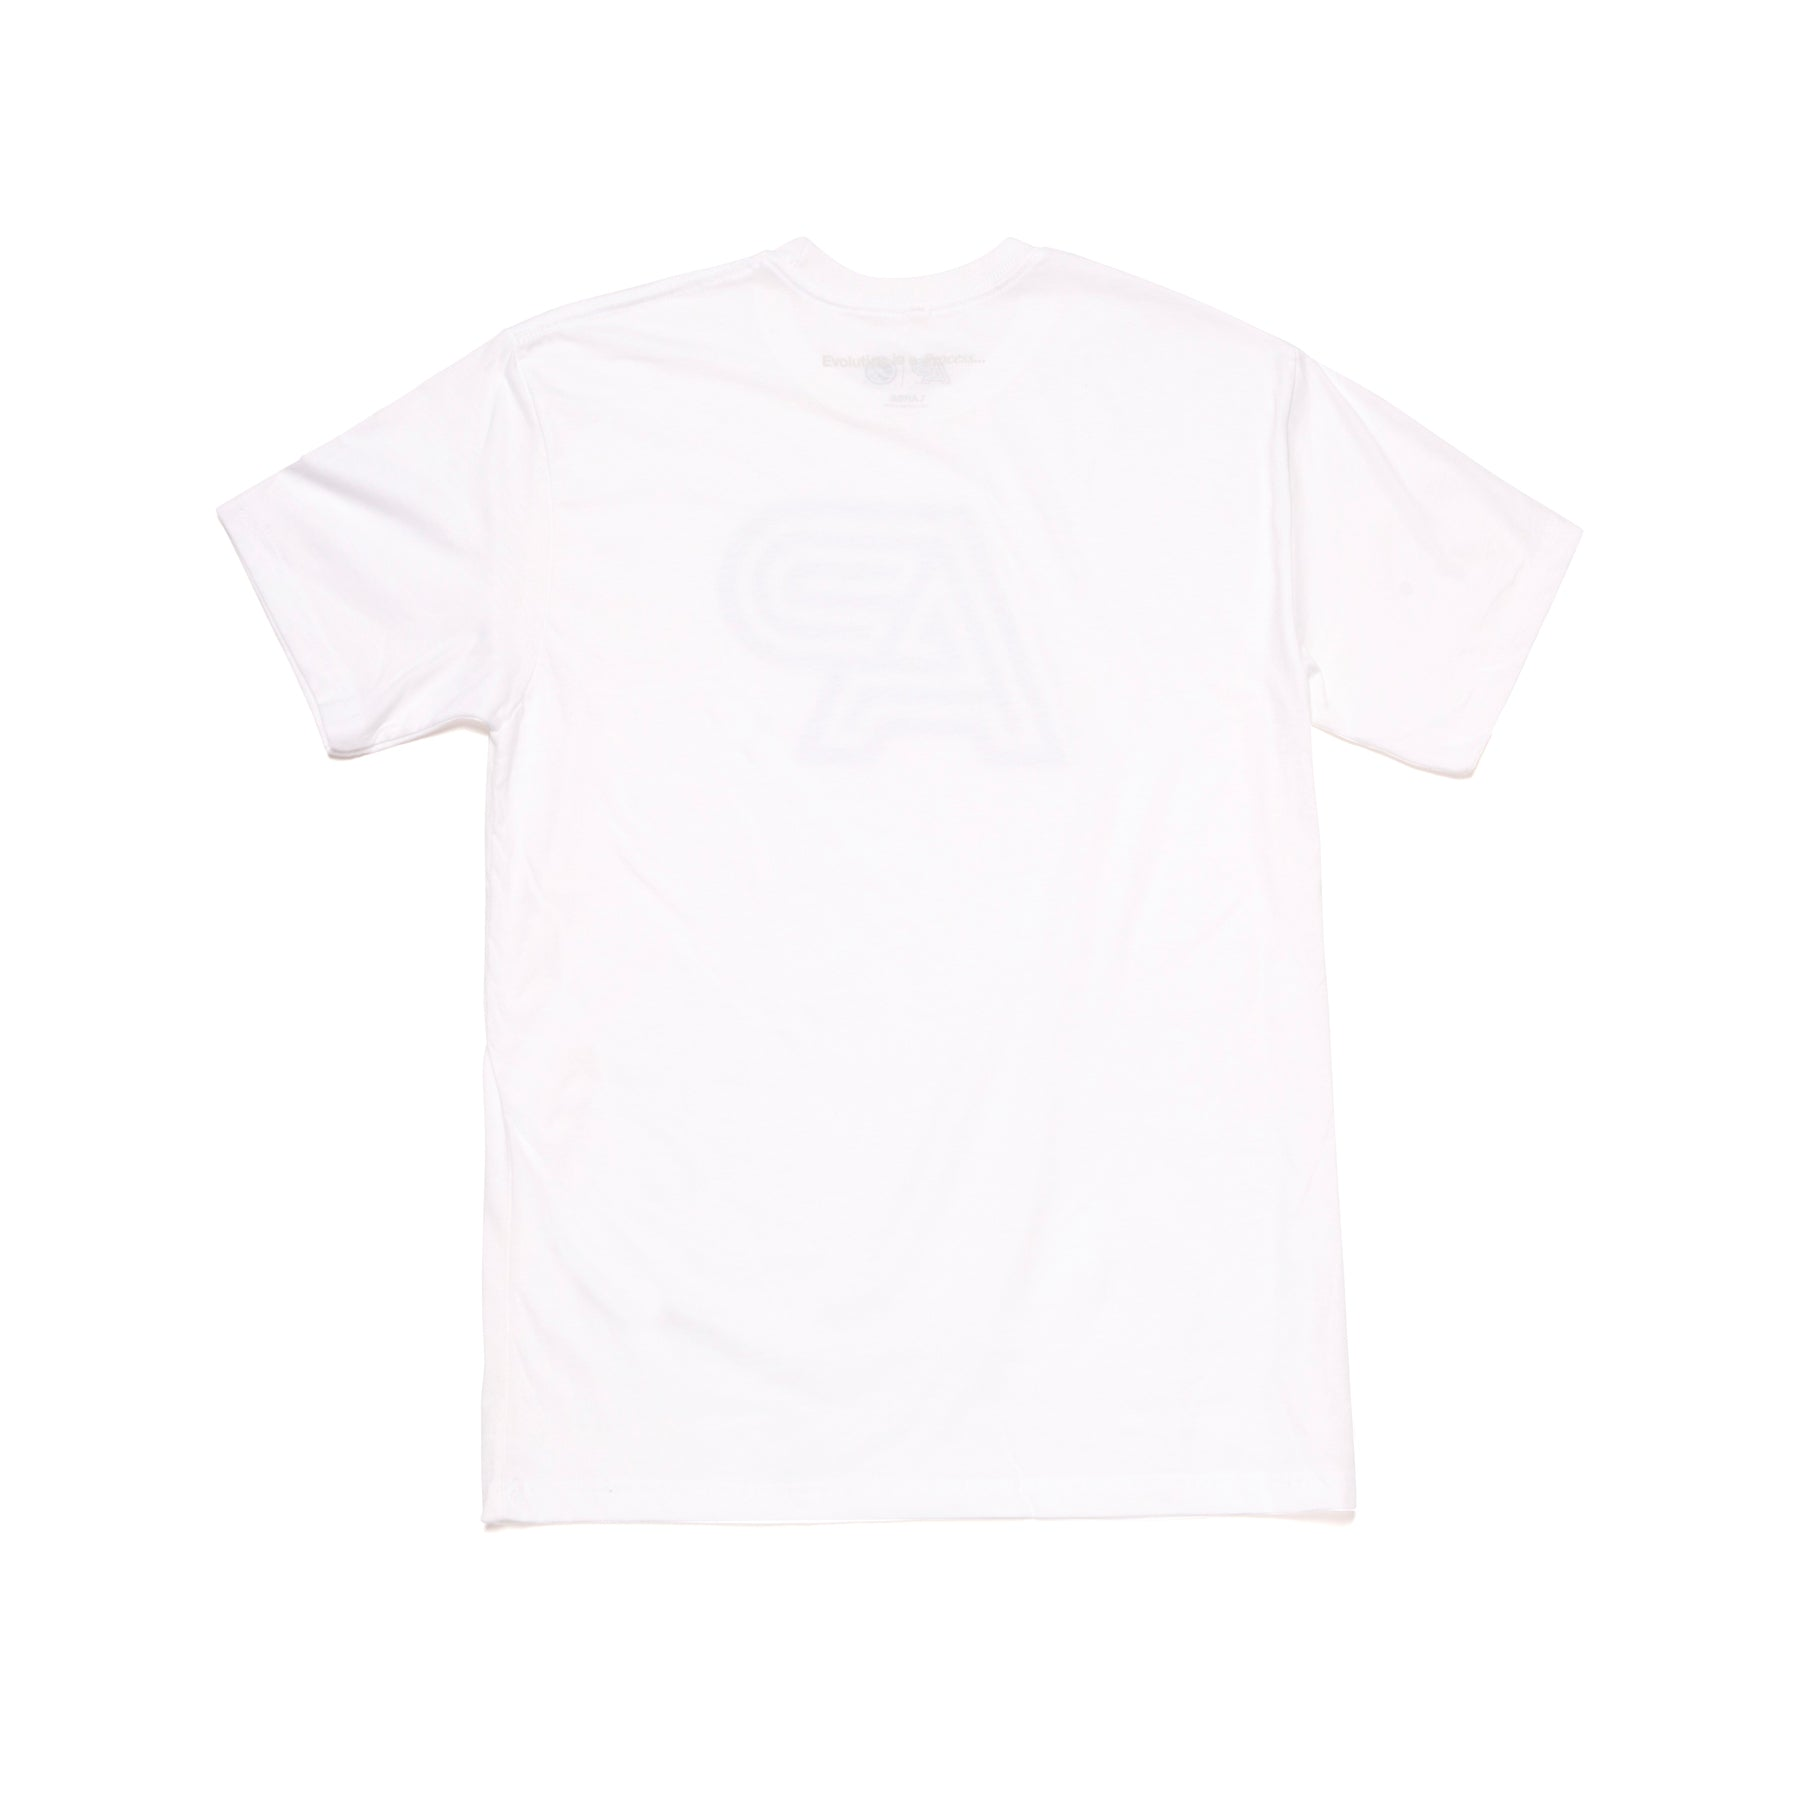 A&P SYR MARK TEE (WHITE)